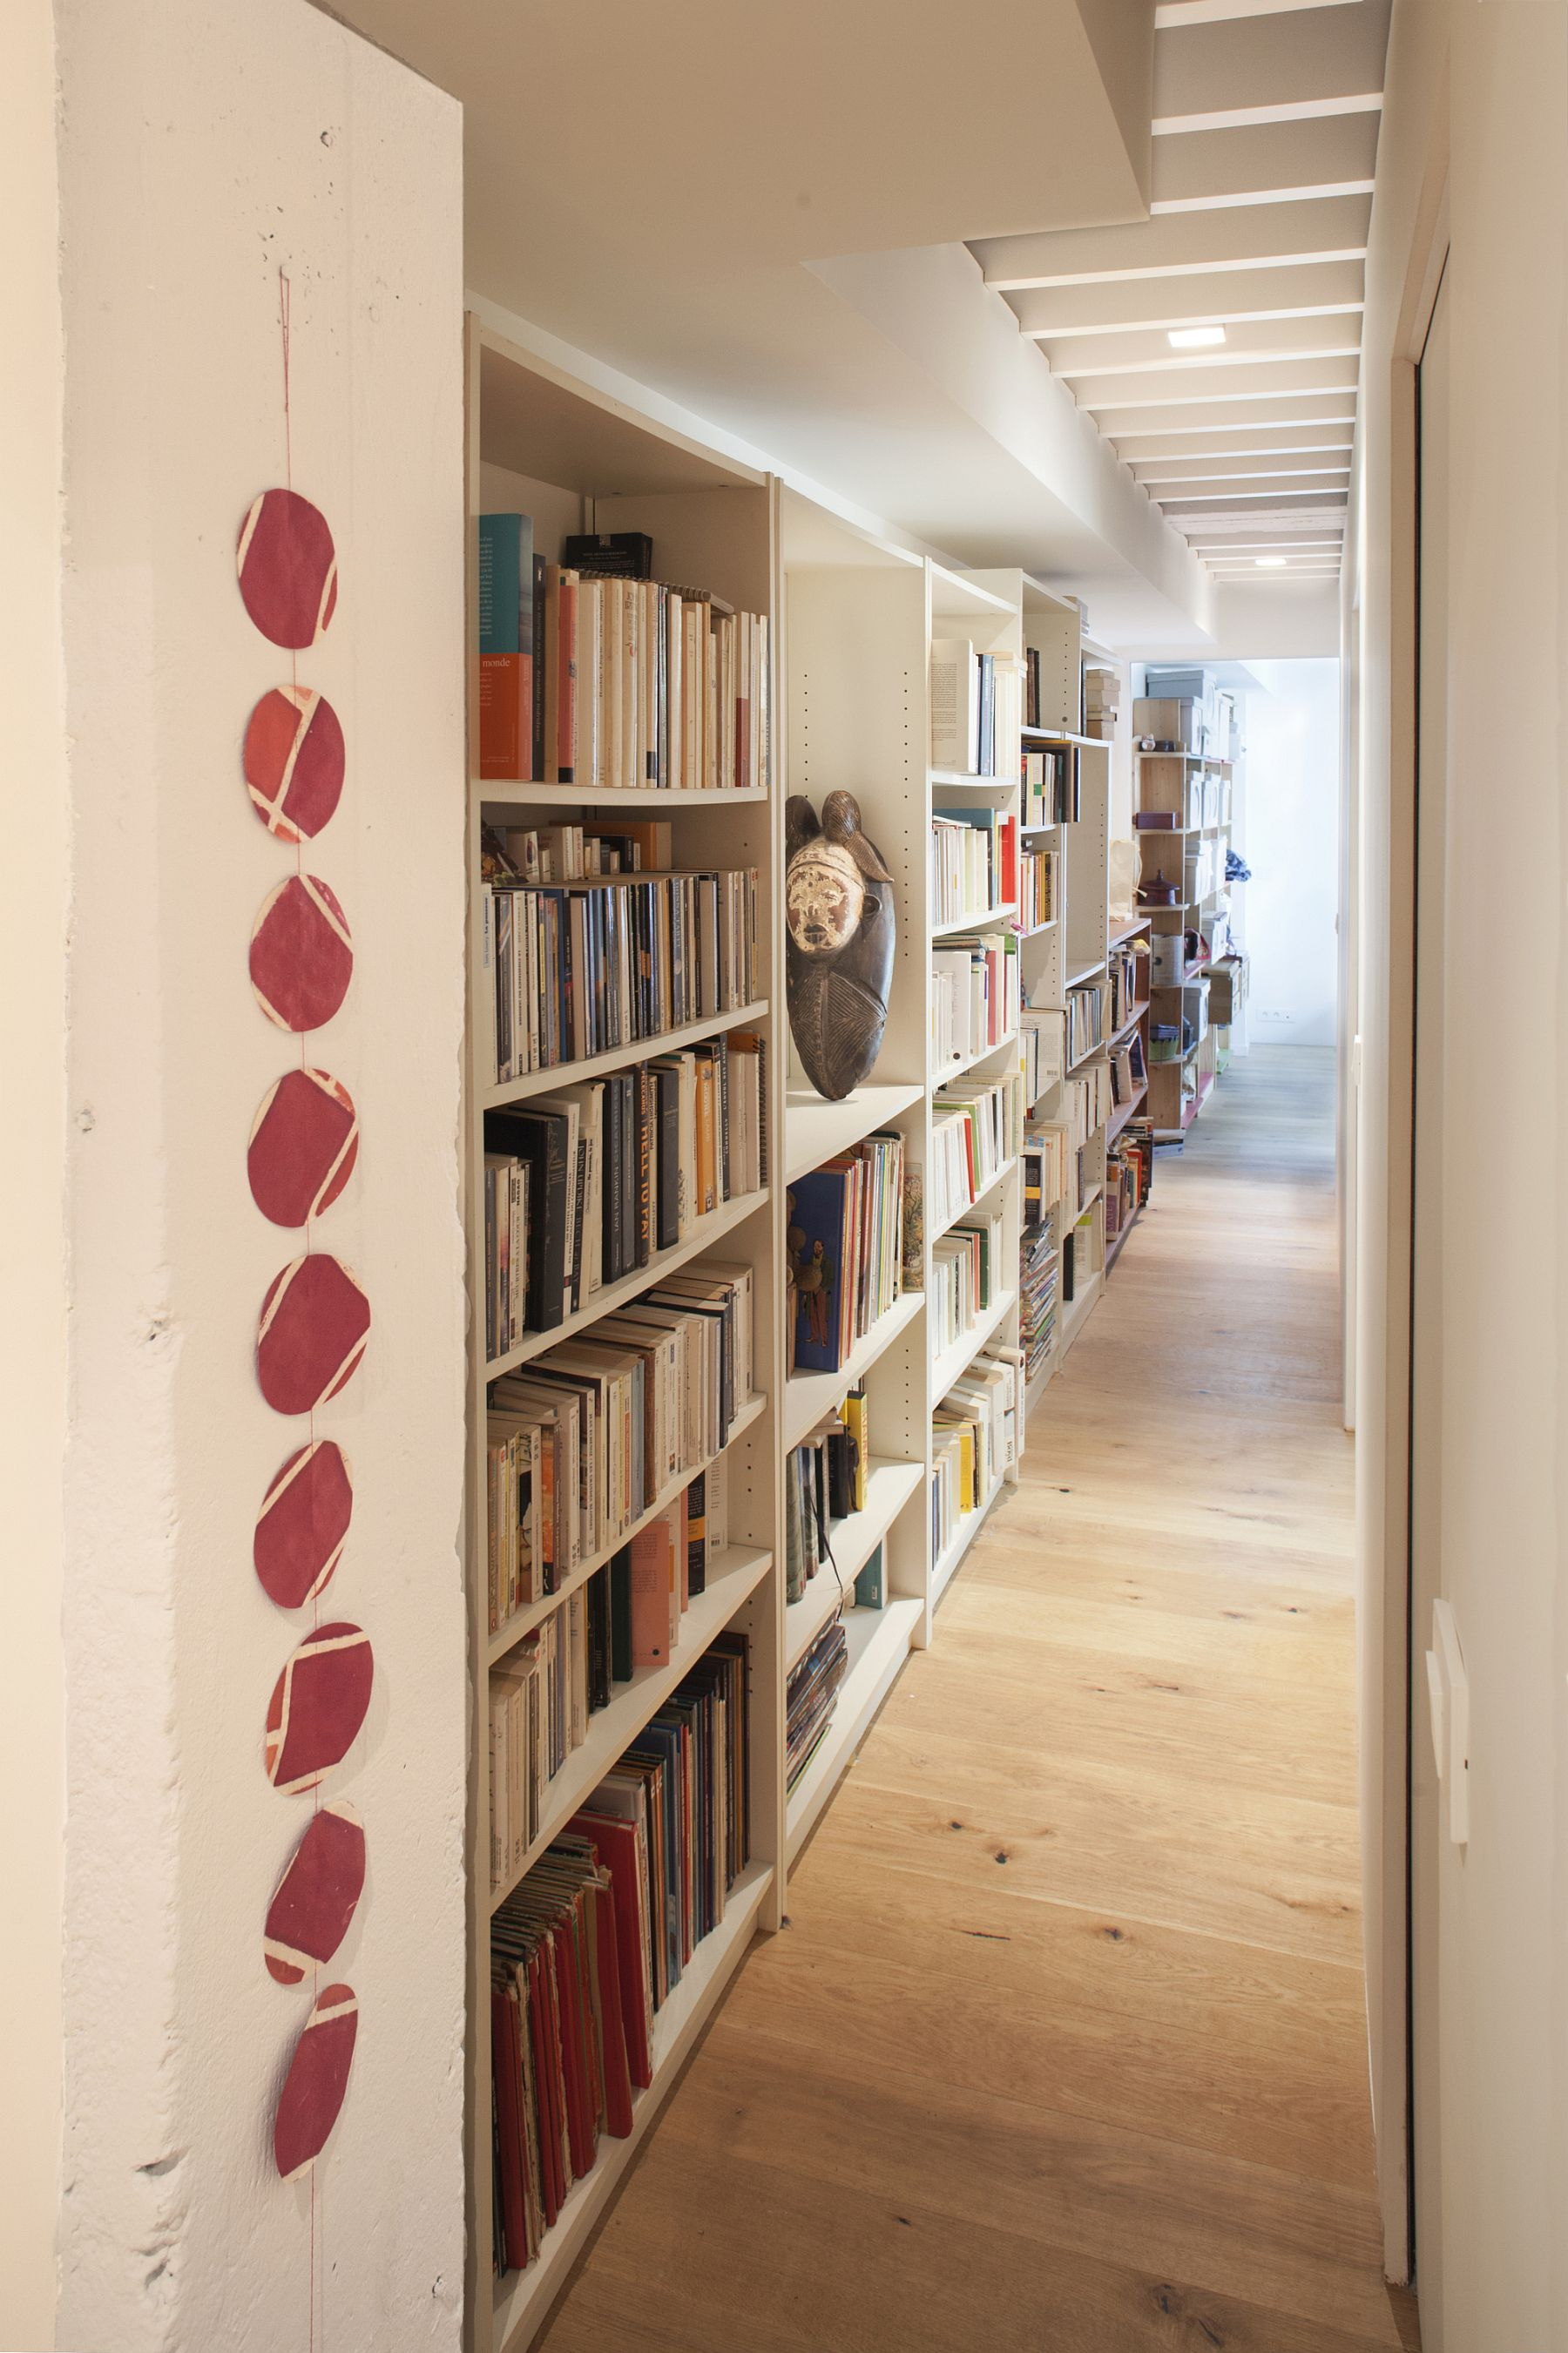 Long corrrridor used to store books in style with a series of wall shelves